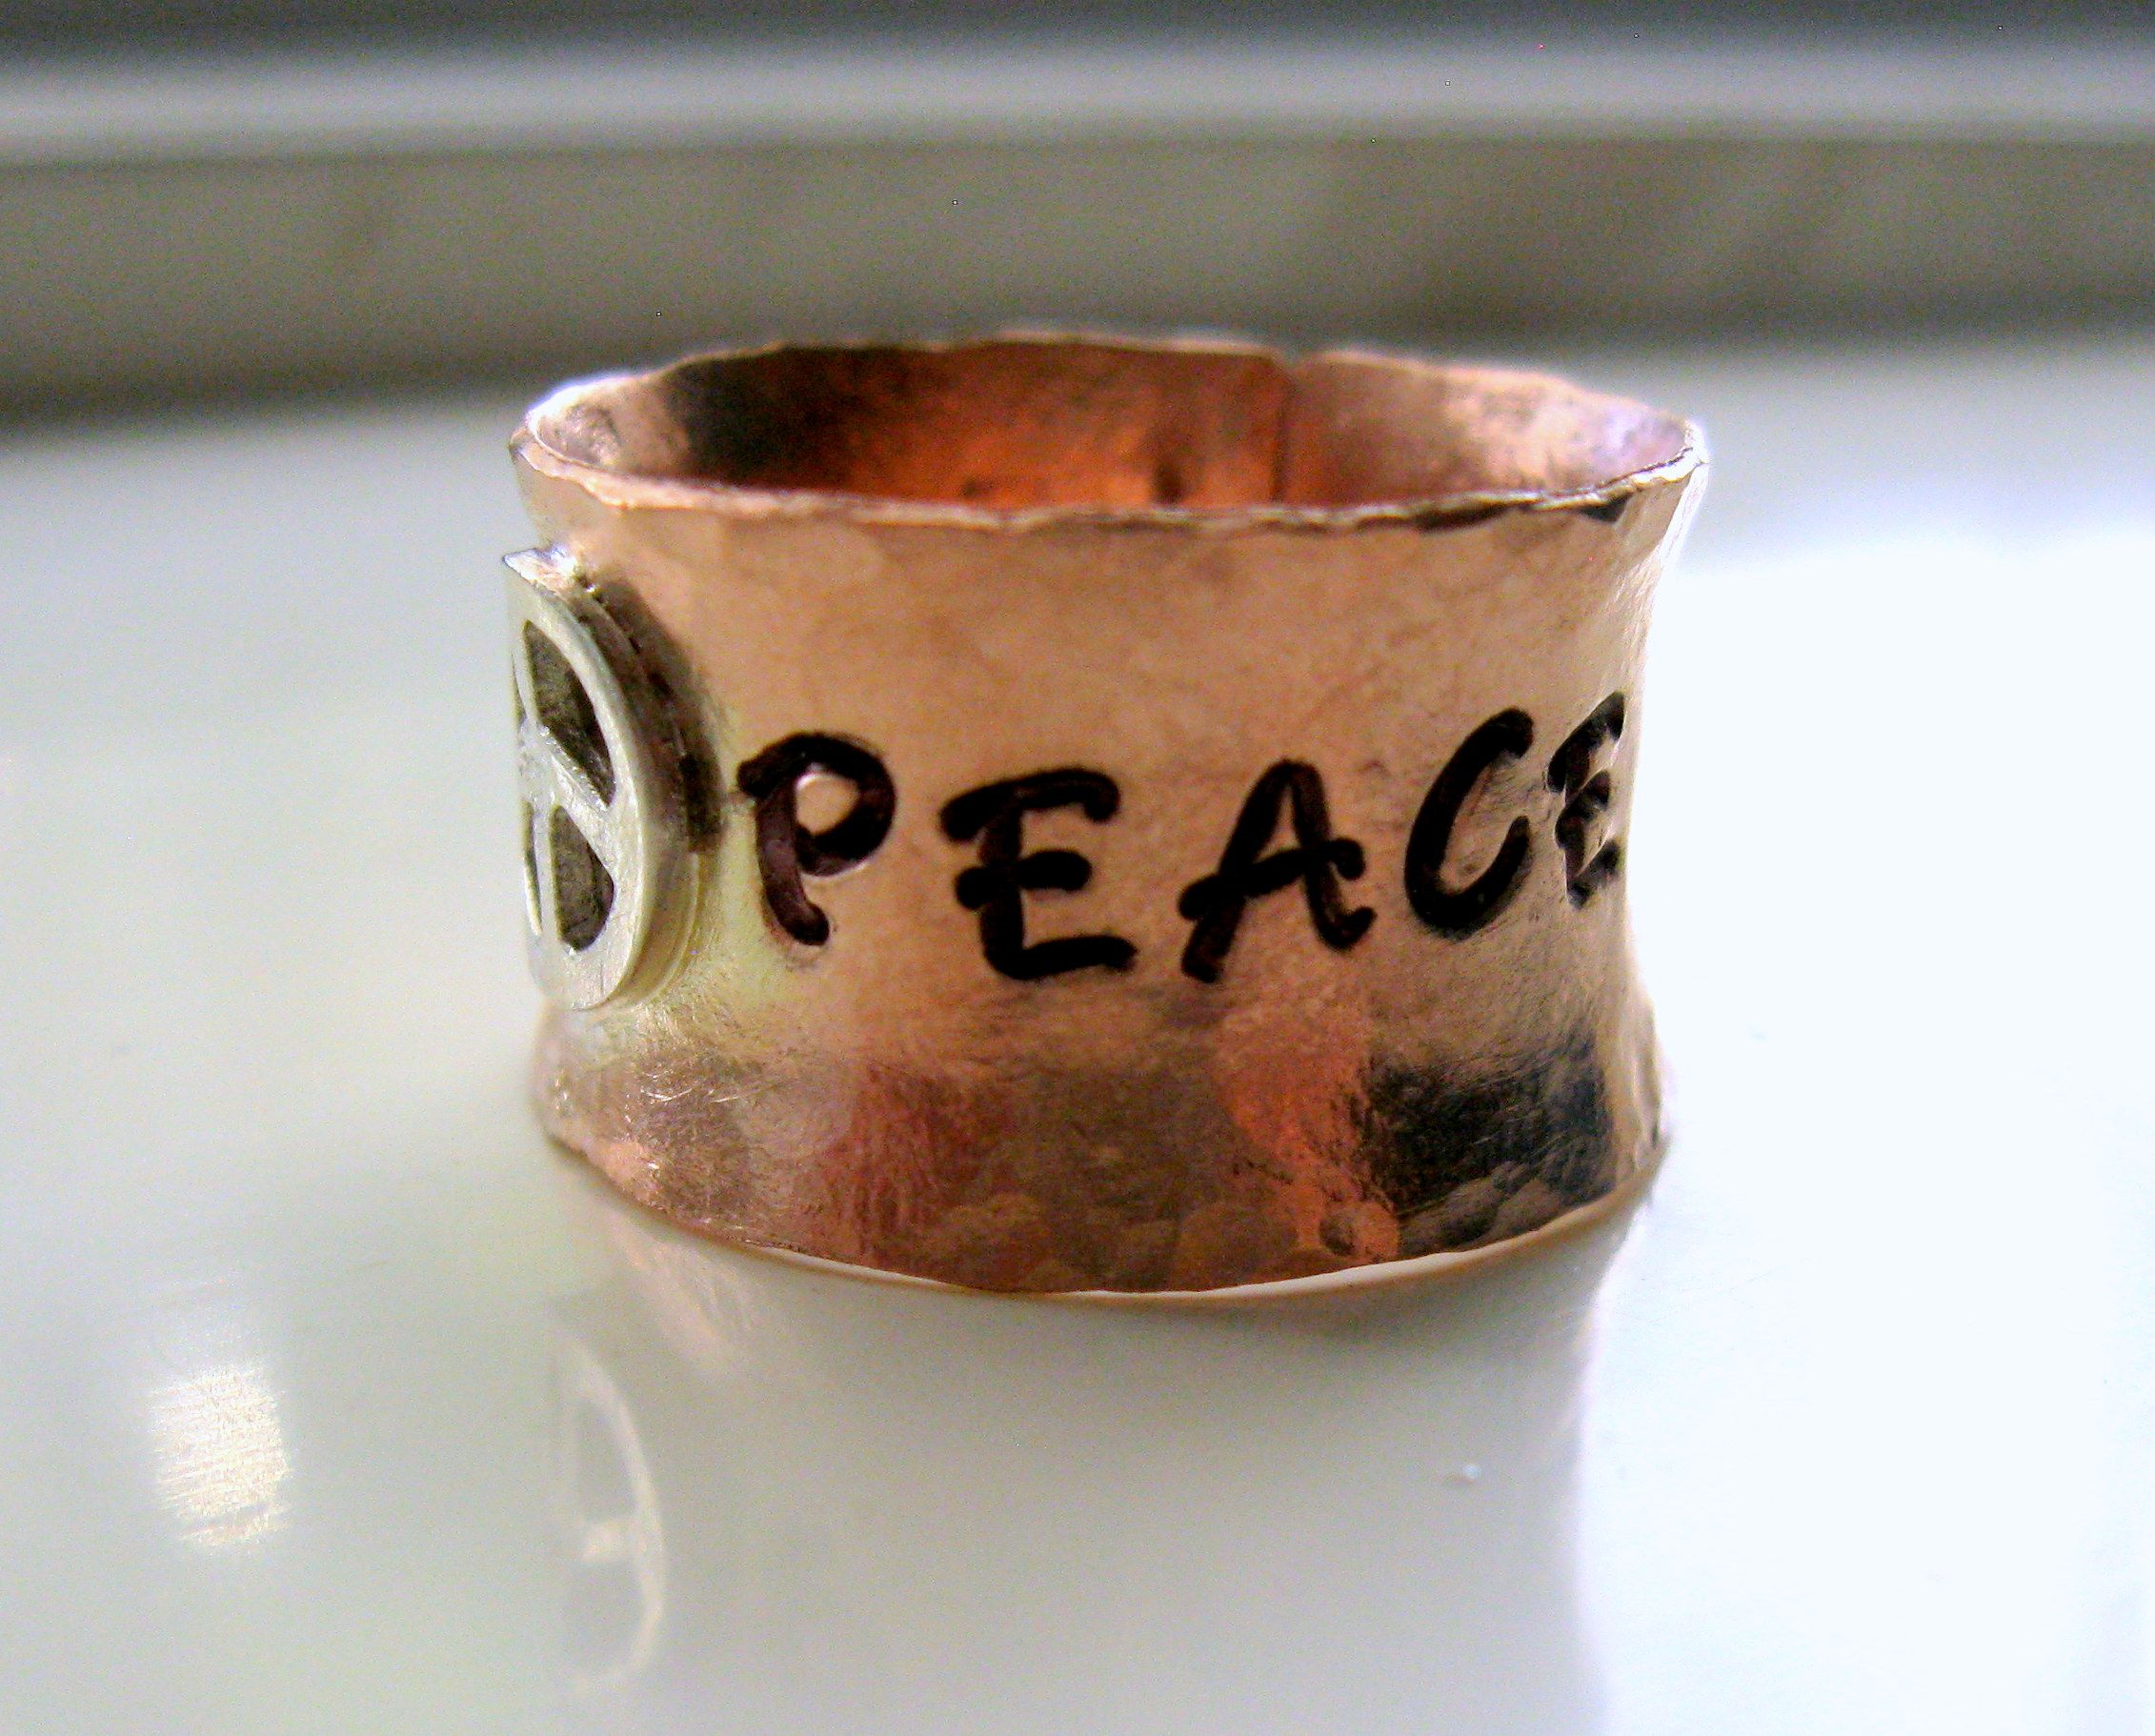 info coper deity silvered collectables vintage napkin rings antiques copper region antique kitsch product thai